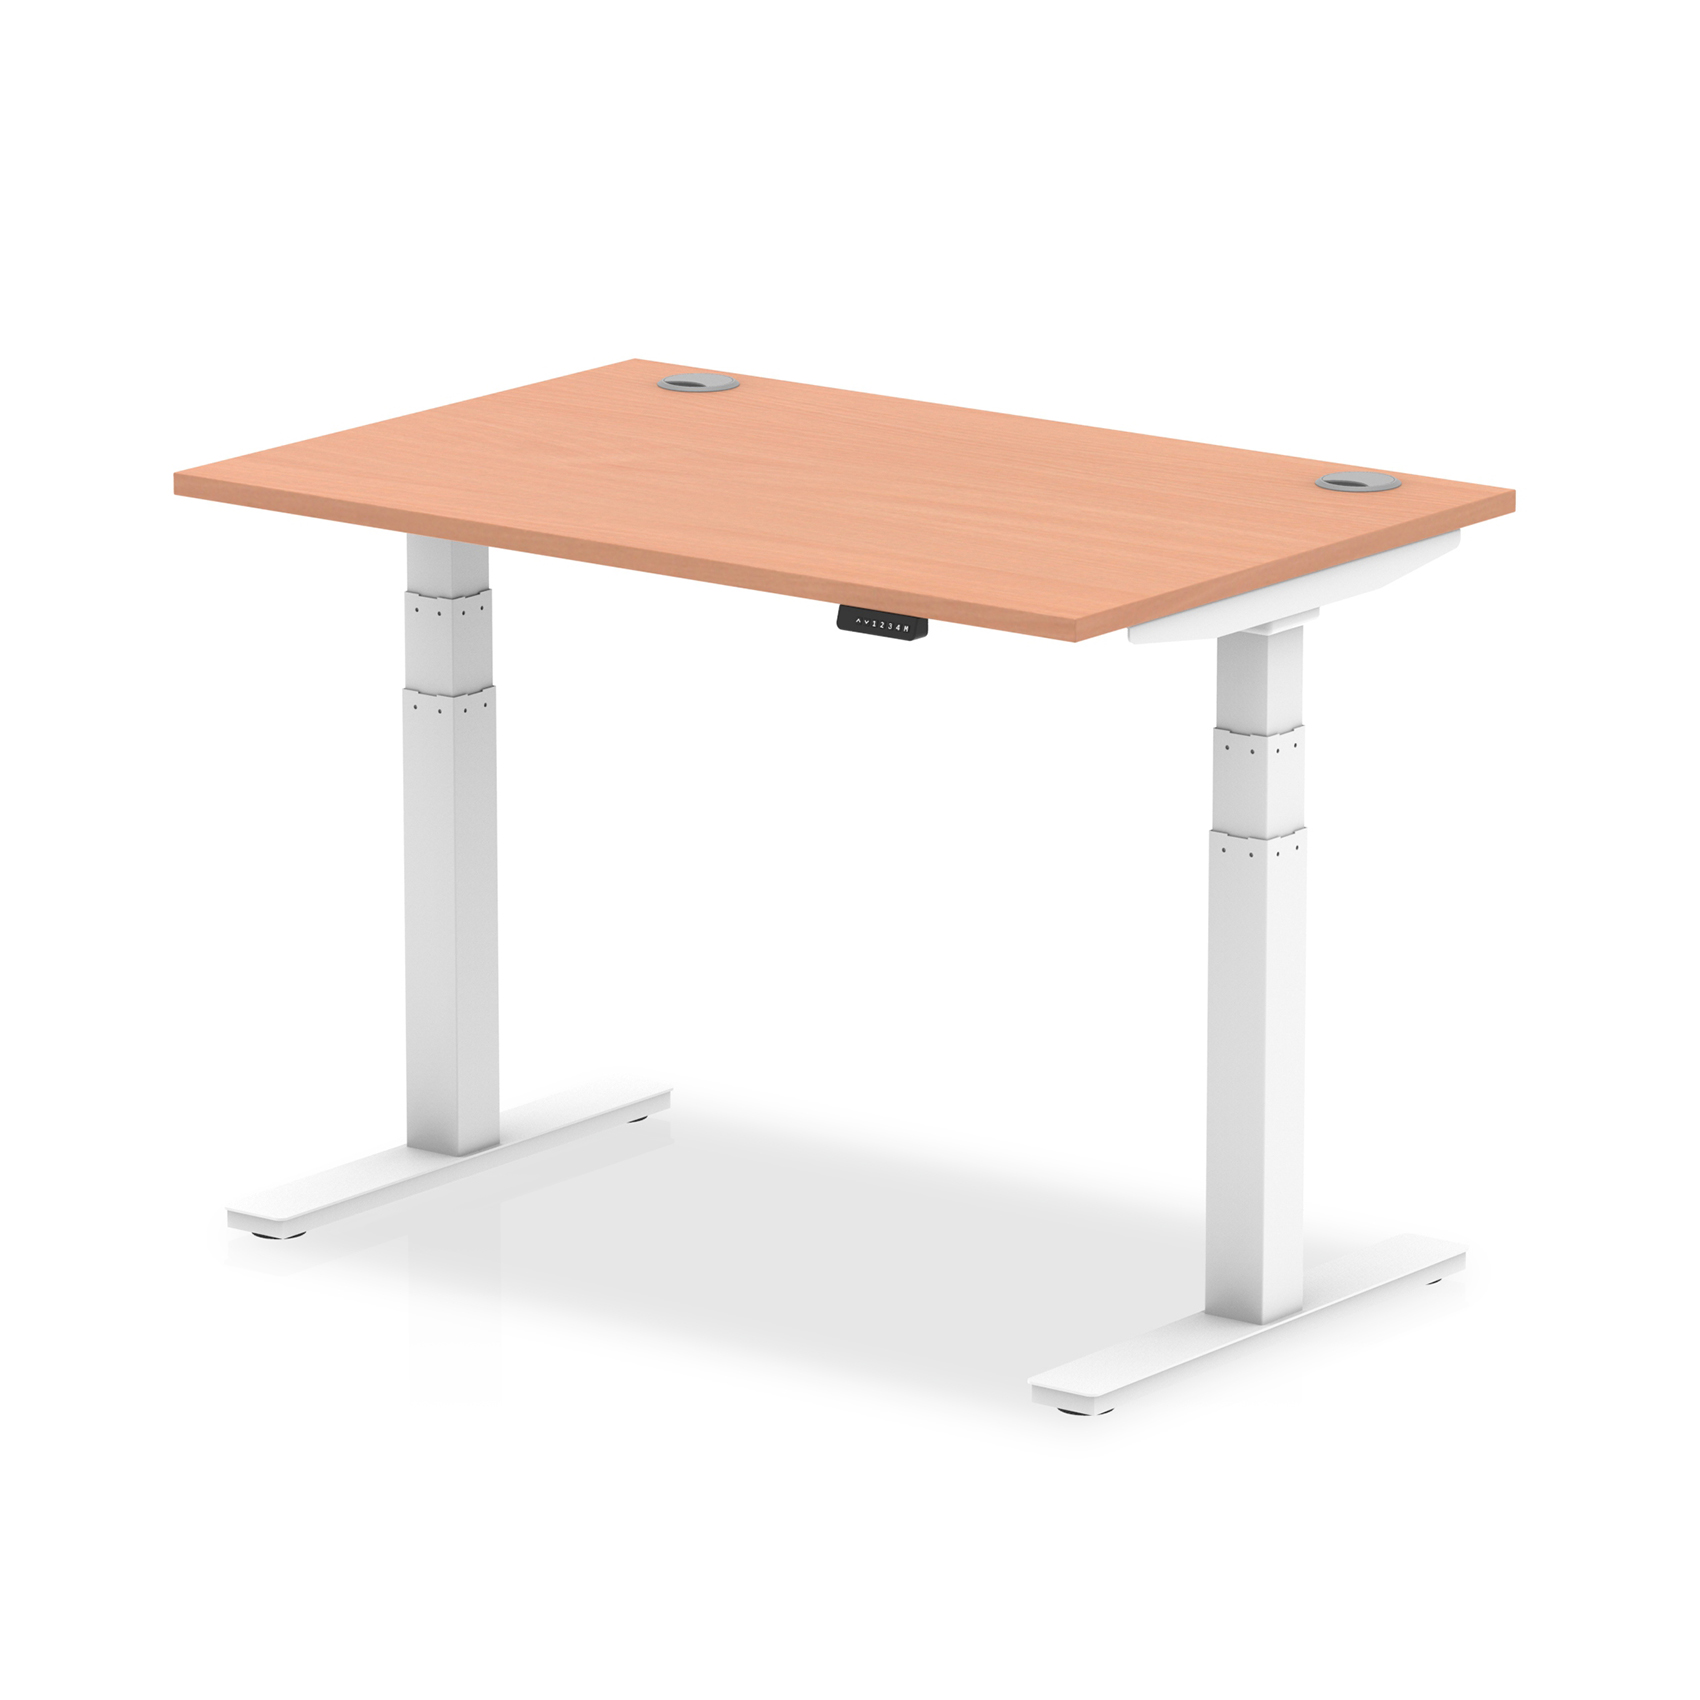 Trexus Sit Stand Desk With Cable Ports White Legs 1200x800mm Beech Ref HA01101